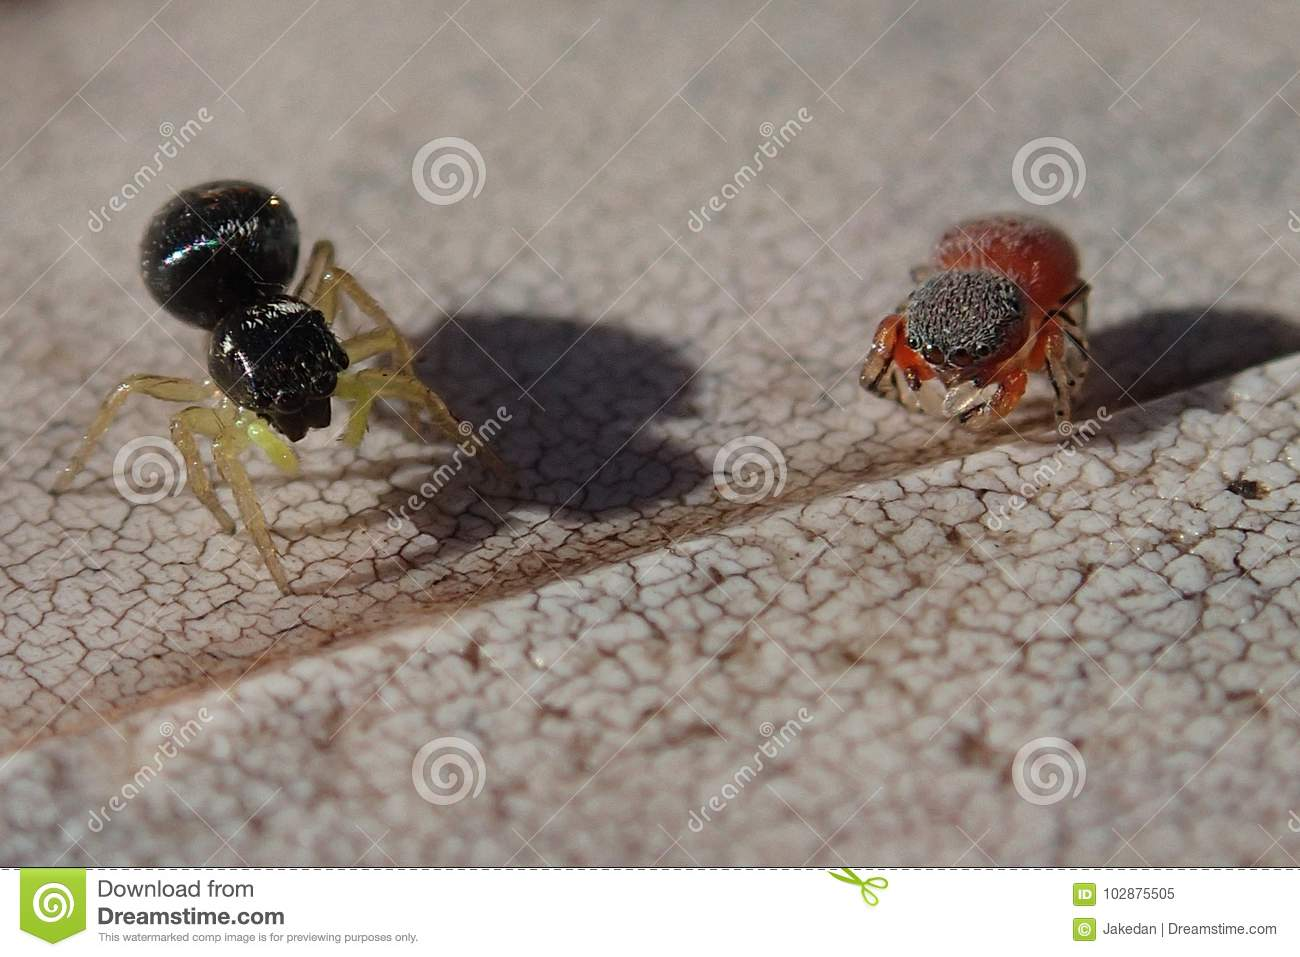 Black jumping spider with red dot - photo#44